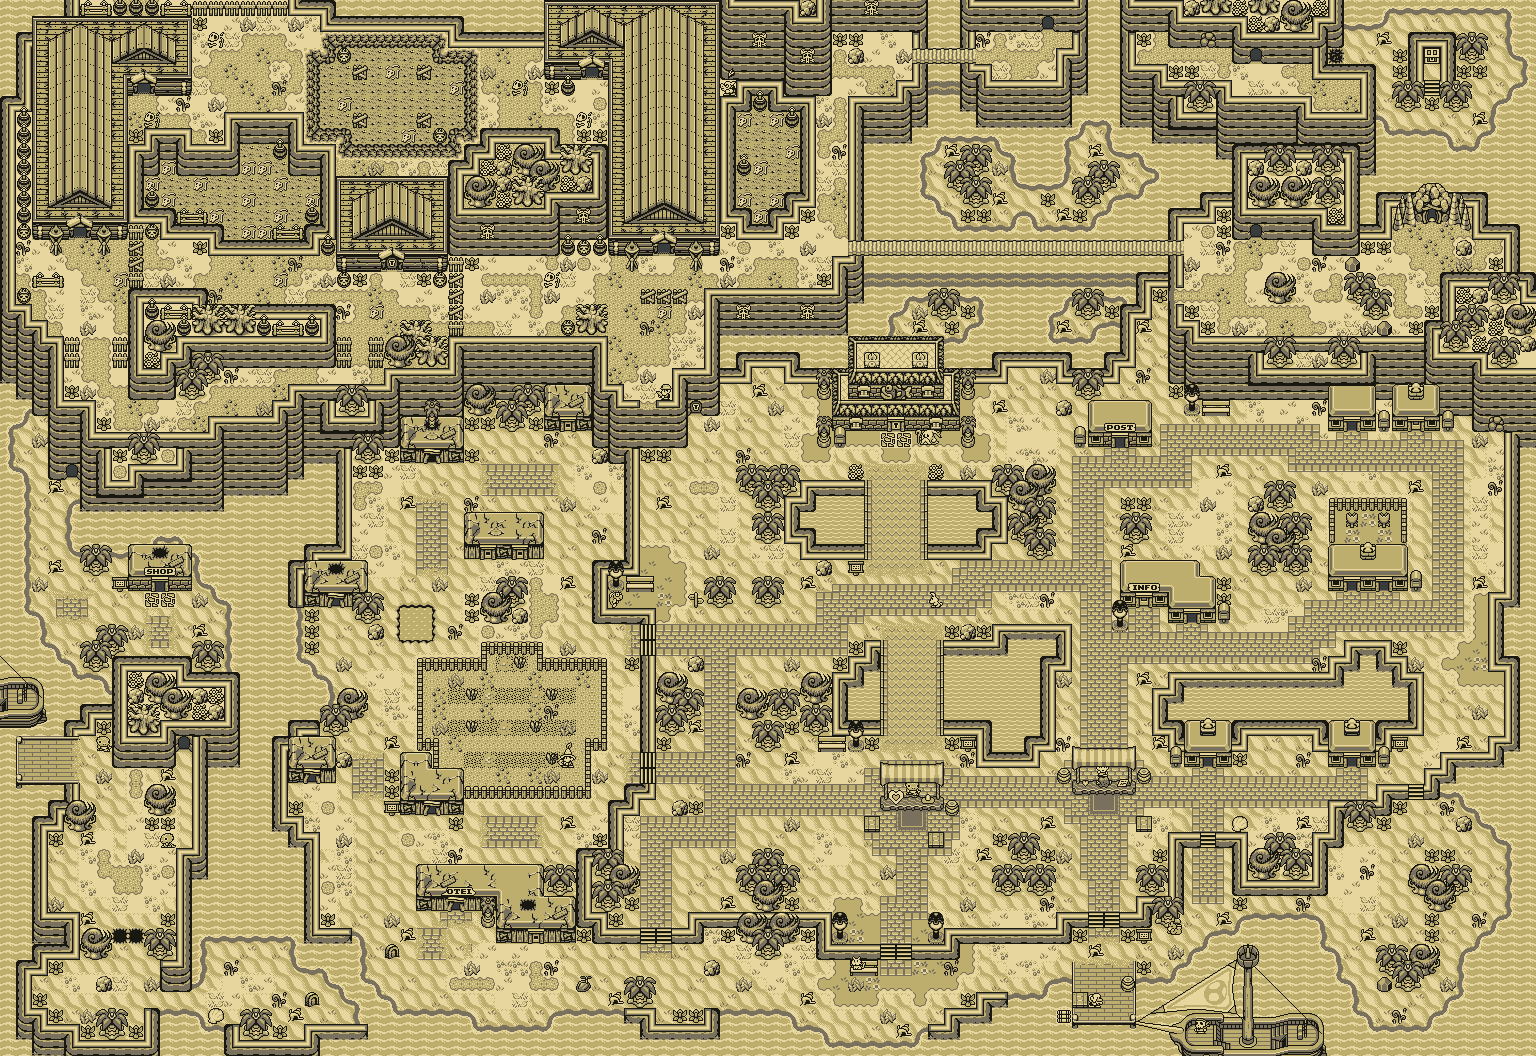 zquest_map00005.png